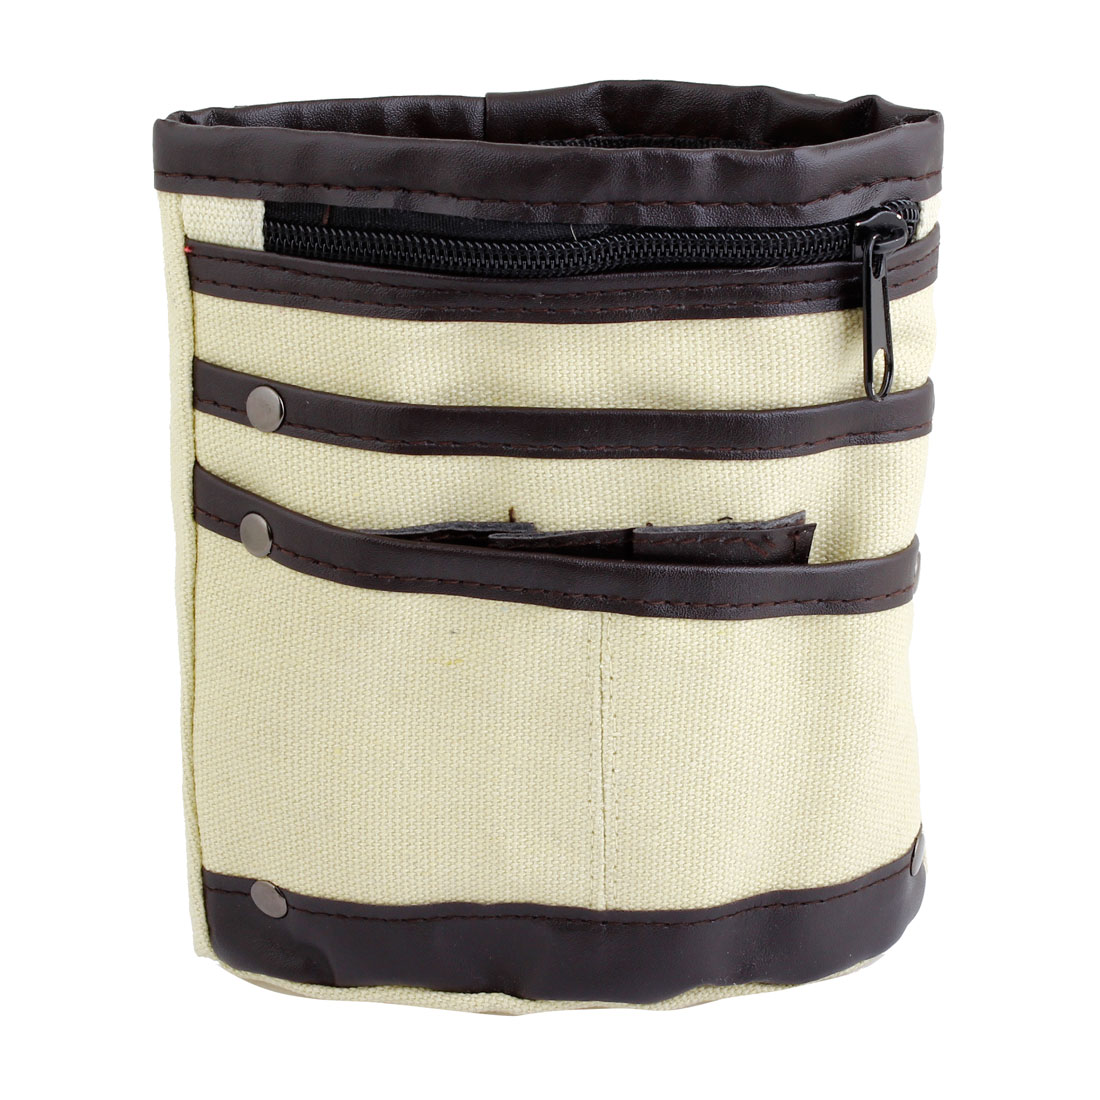 Beige Canvas 4 Pockets Zip Up Closure Money Card Waist Bag Holder for Men